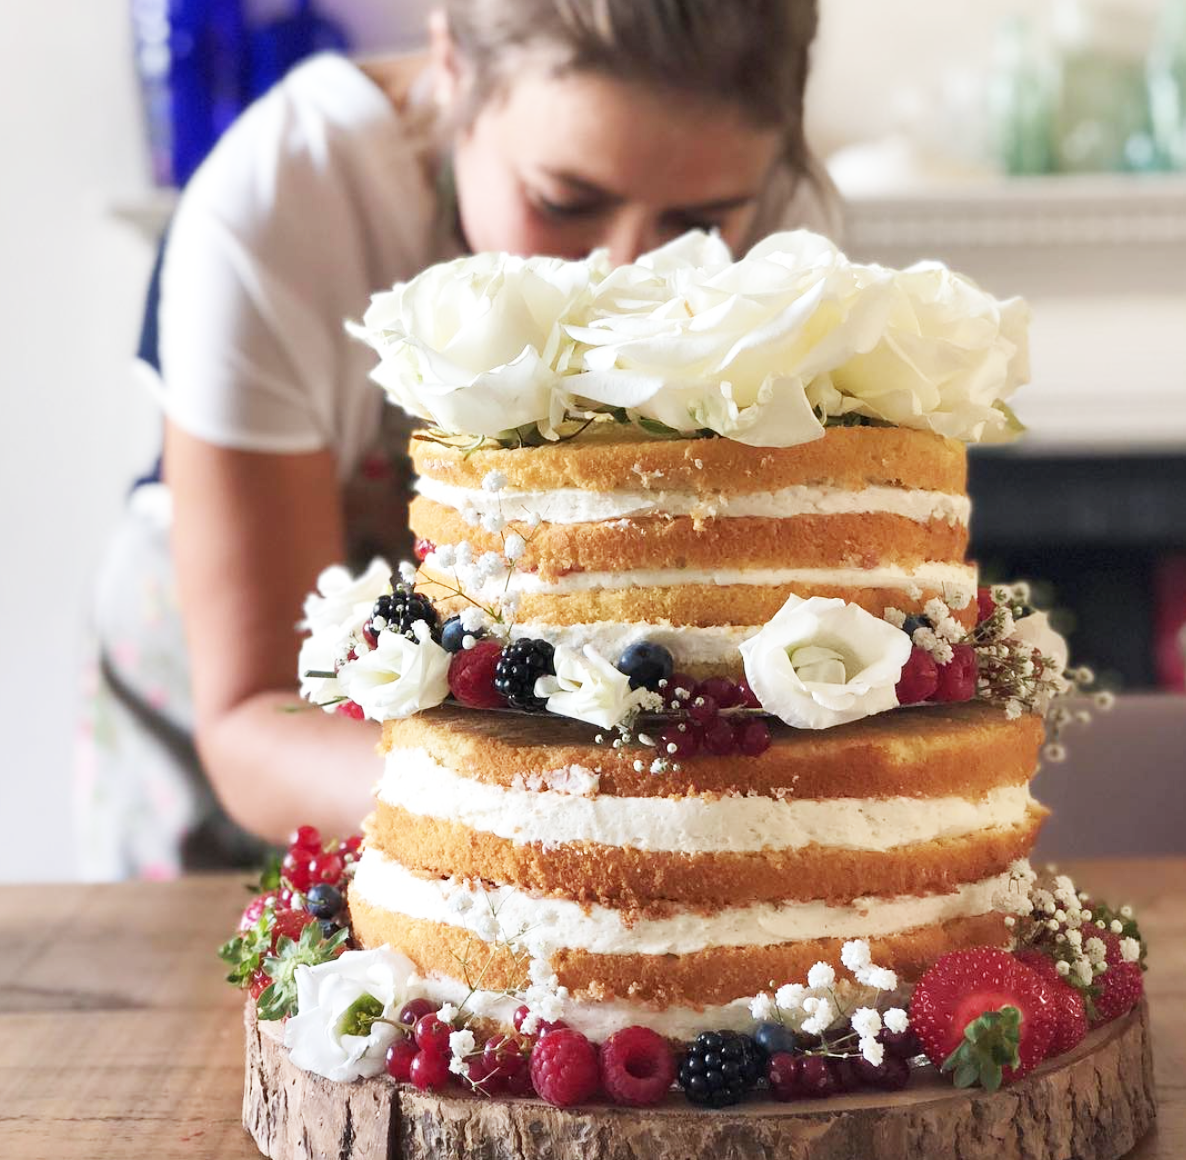 Wedding Cakes - Each cake is created based on your own requirements. With all Scrumptious cakes being bespoke no one design is the same.Please get in touch to book a tasting or find out more.